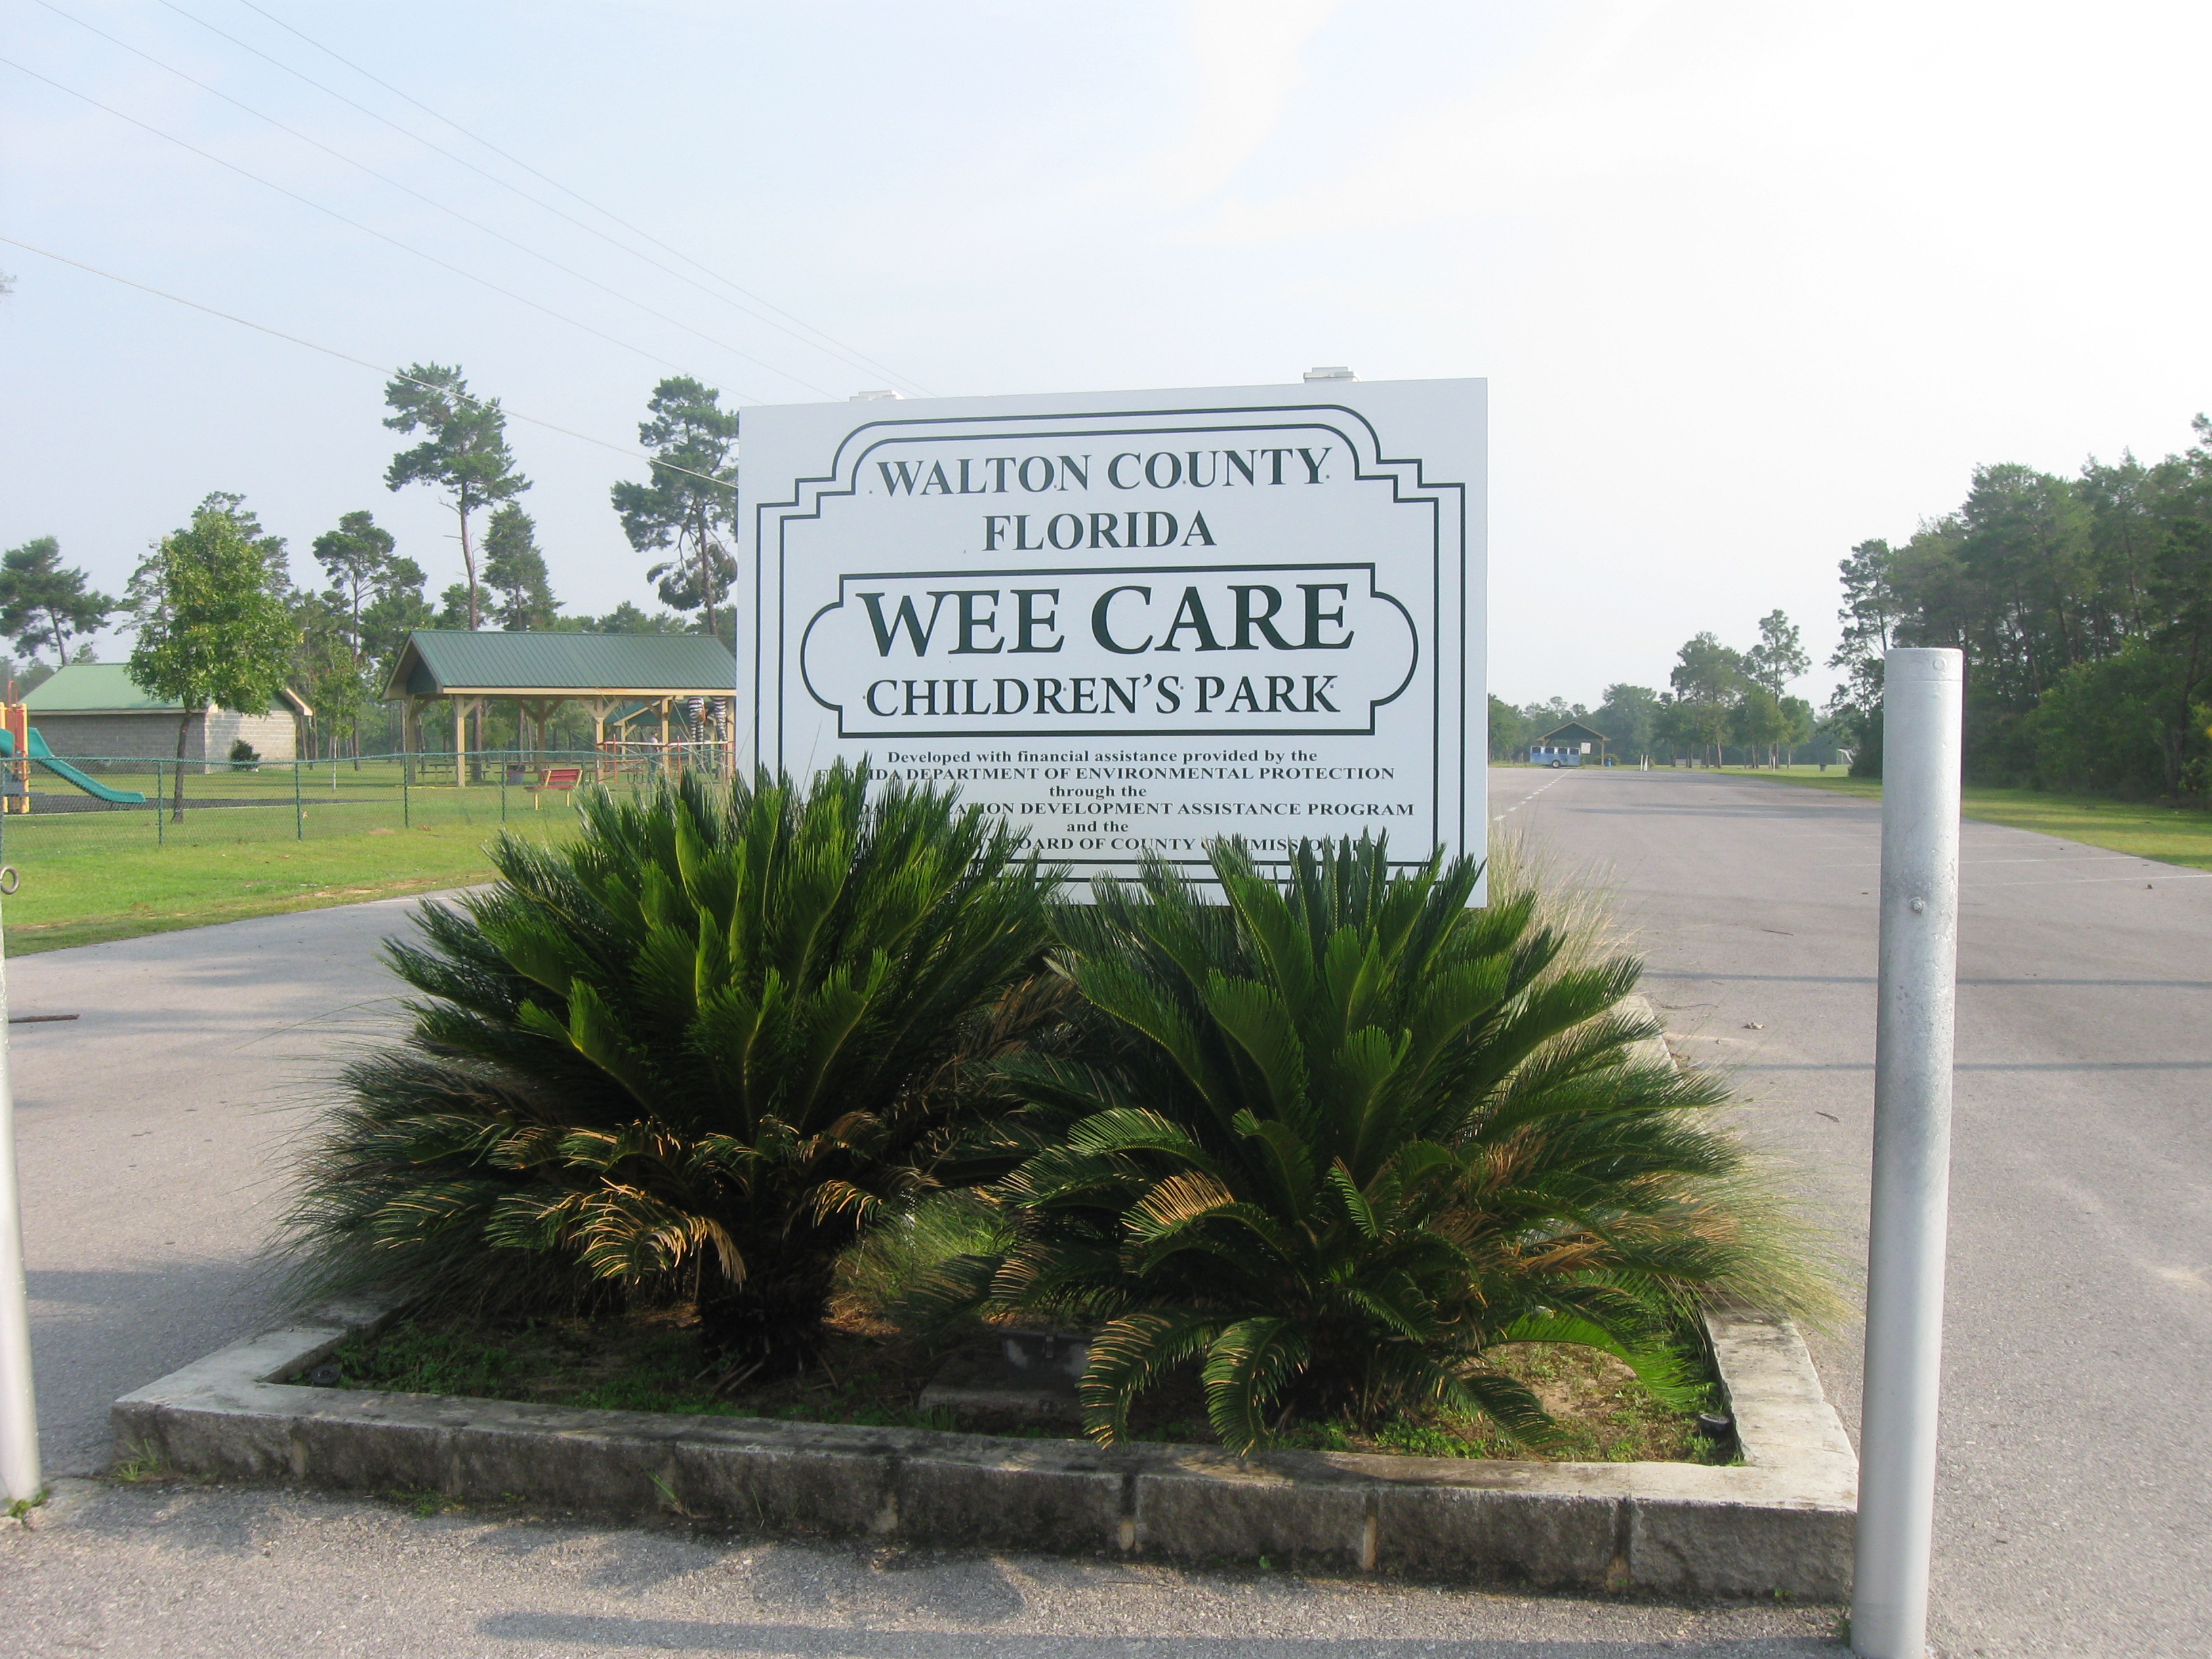 Wee Care Park